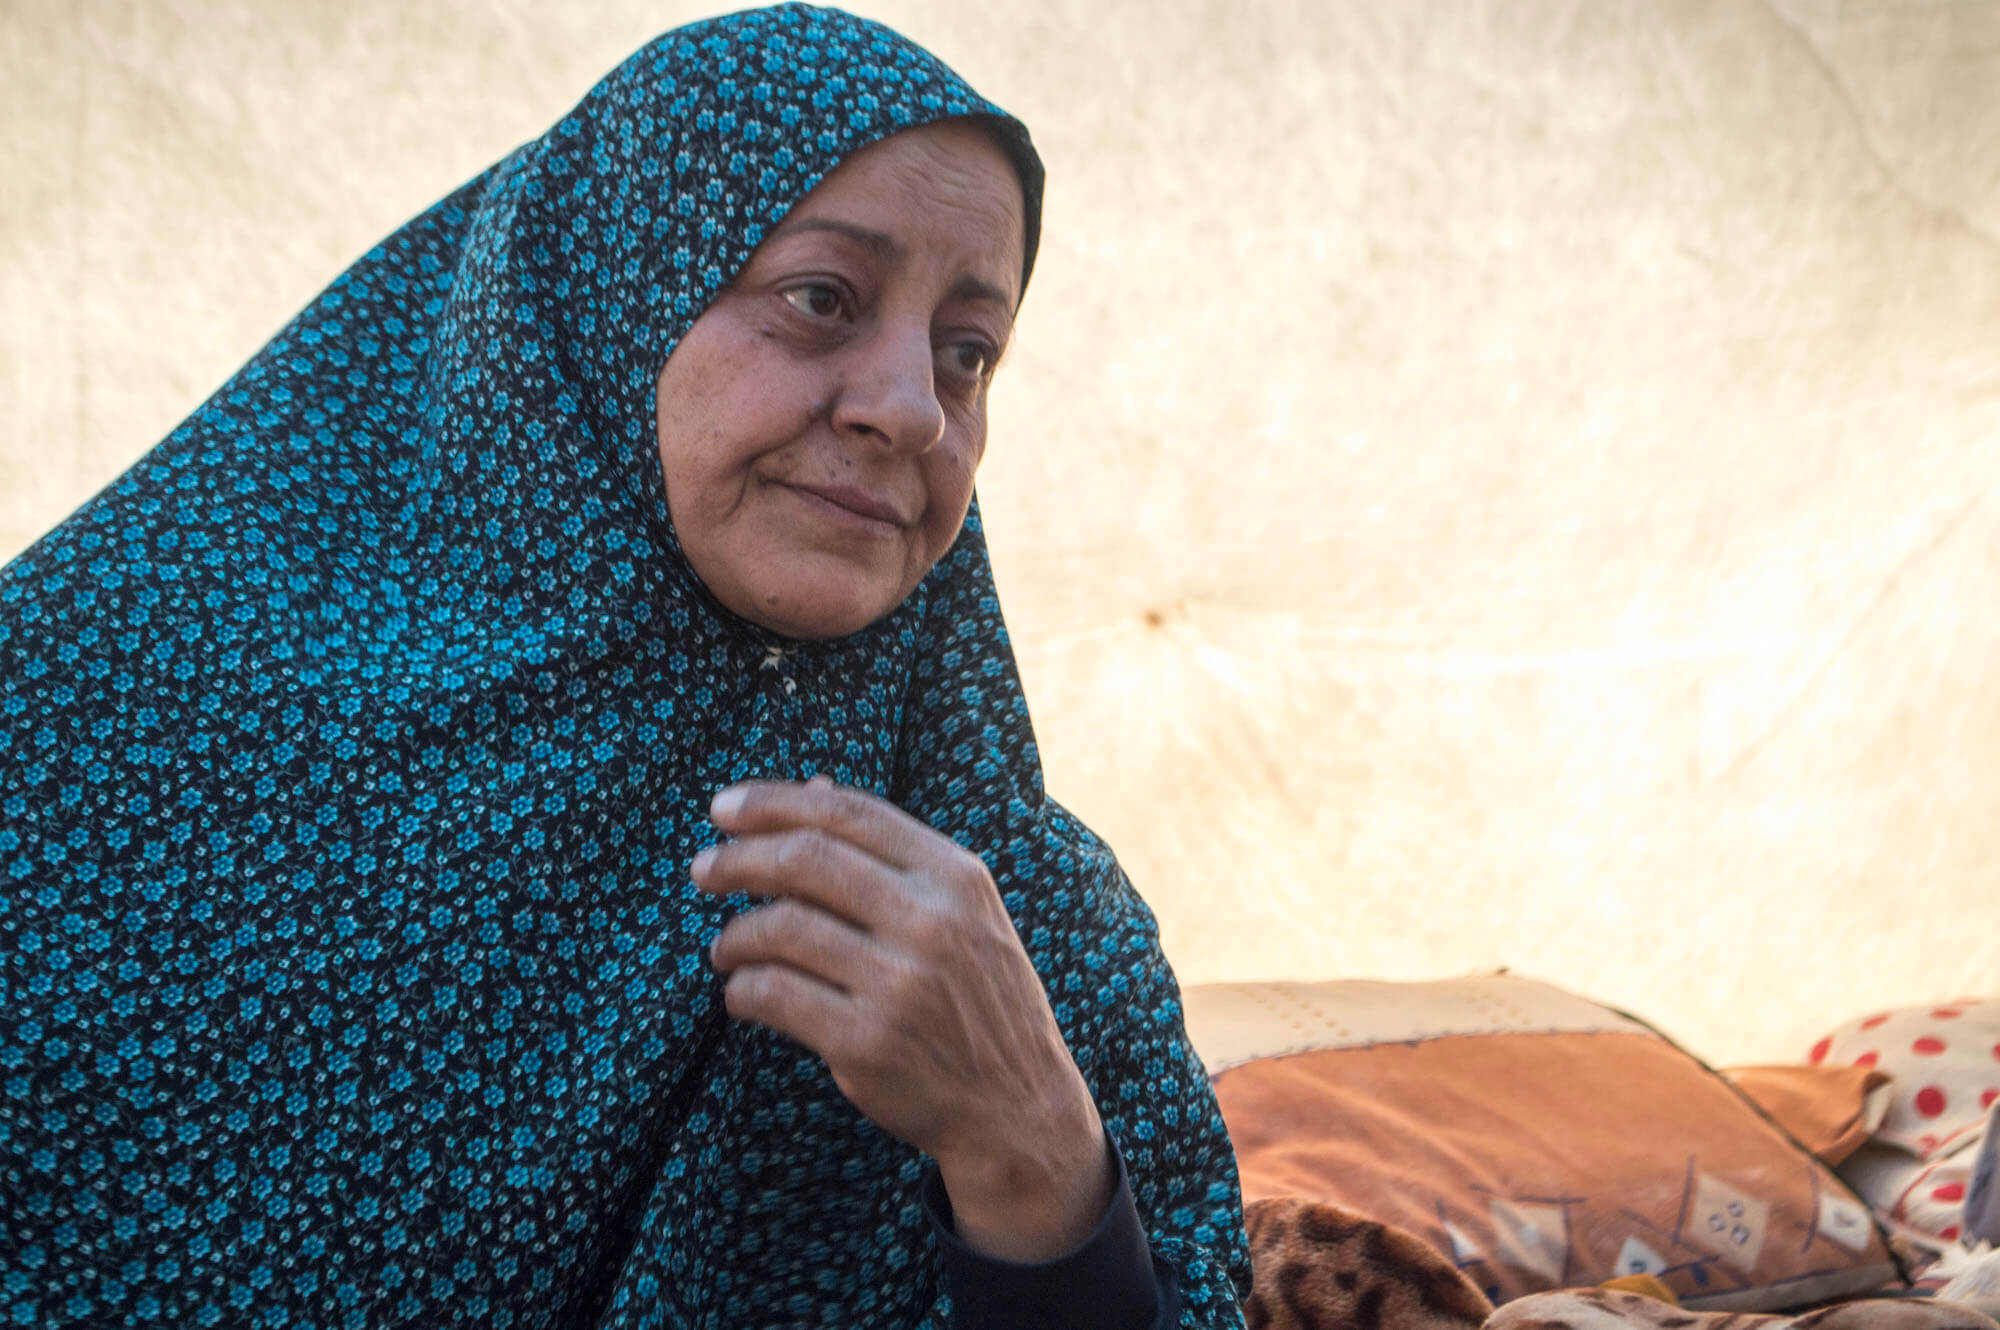 """Baharka camp is Hudda Awad's fifth refugee camp in her lifetime. After contracting cancer and now struggling to pay for the treatment - she believes it will be her last. The misfortune that has plighted her life since her parents fled the Nakba doesn't surprise her anymore. """"We, the Palestinians, are professional refugees,"""" Awad told Mondoweiss. (Photo: Abed Al Qaisi)"""